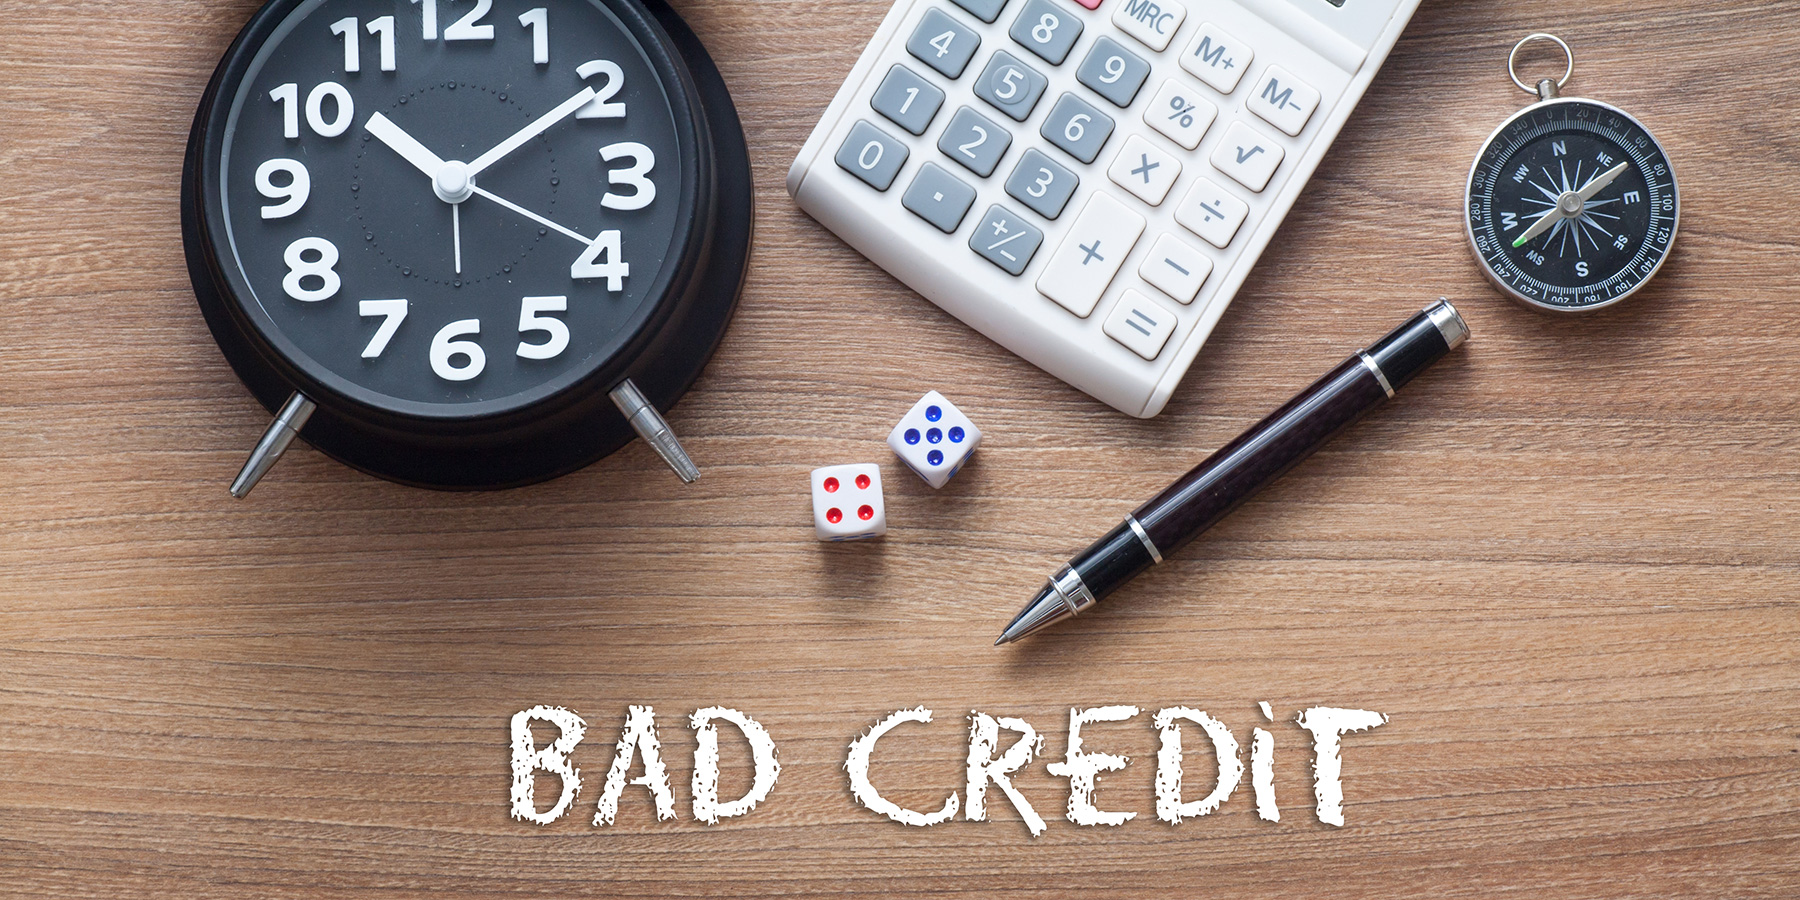 Why Turn To Bad Credit Loans